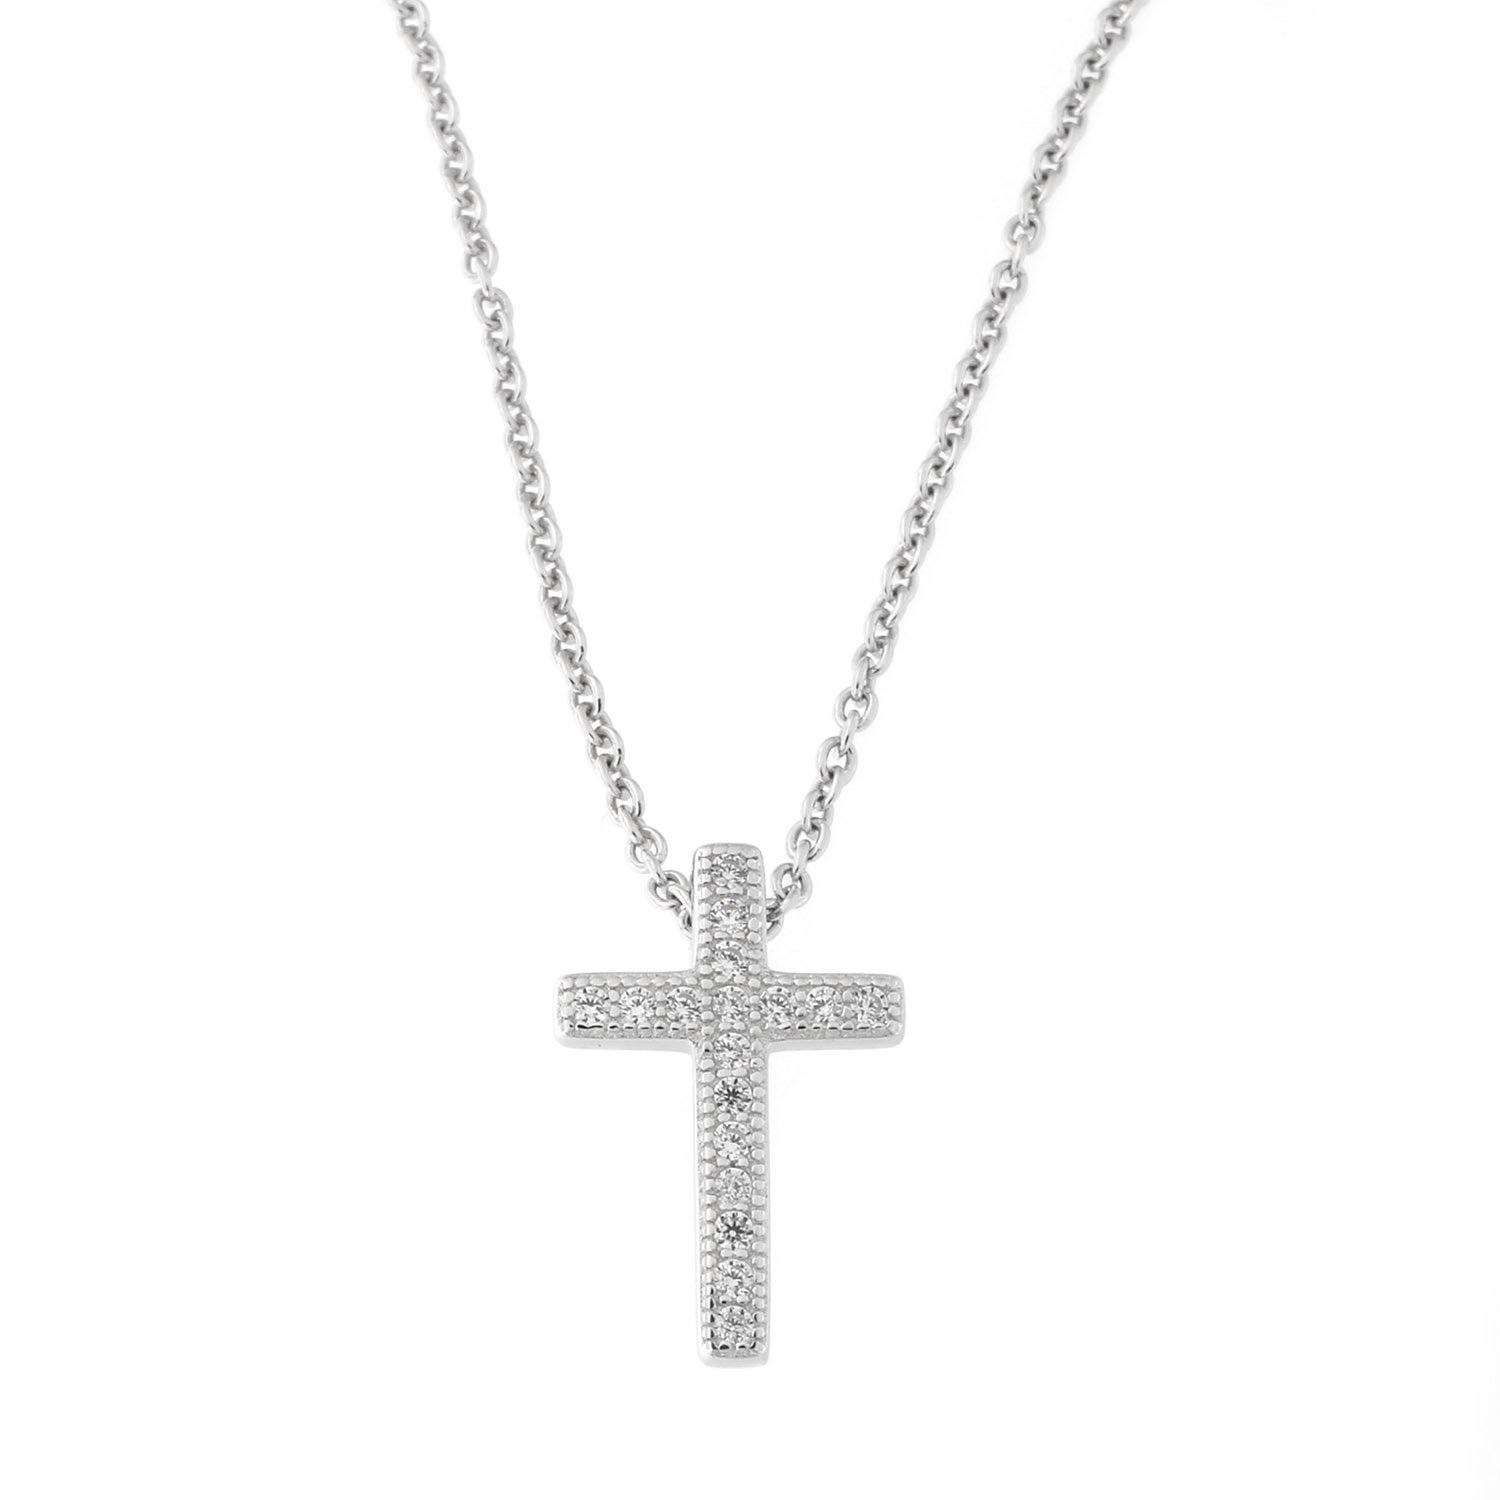 Beauniq Solid Sterling Silver Rhodium Plated Cubic Zirconia Cross Pendant Necklace